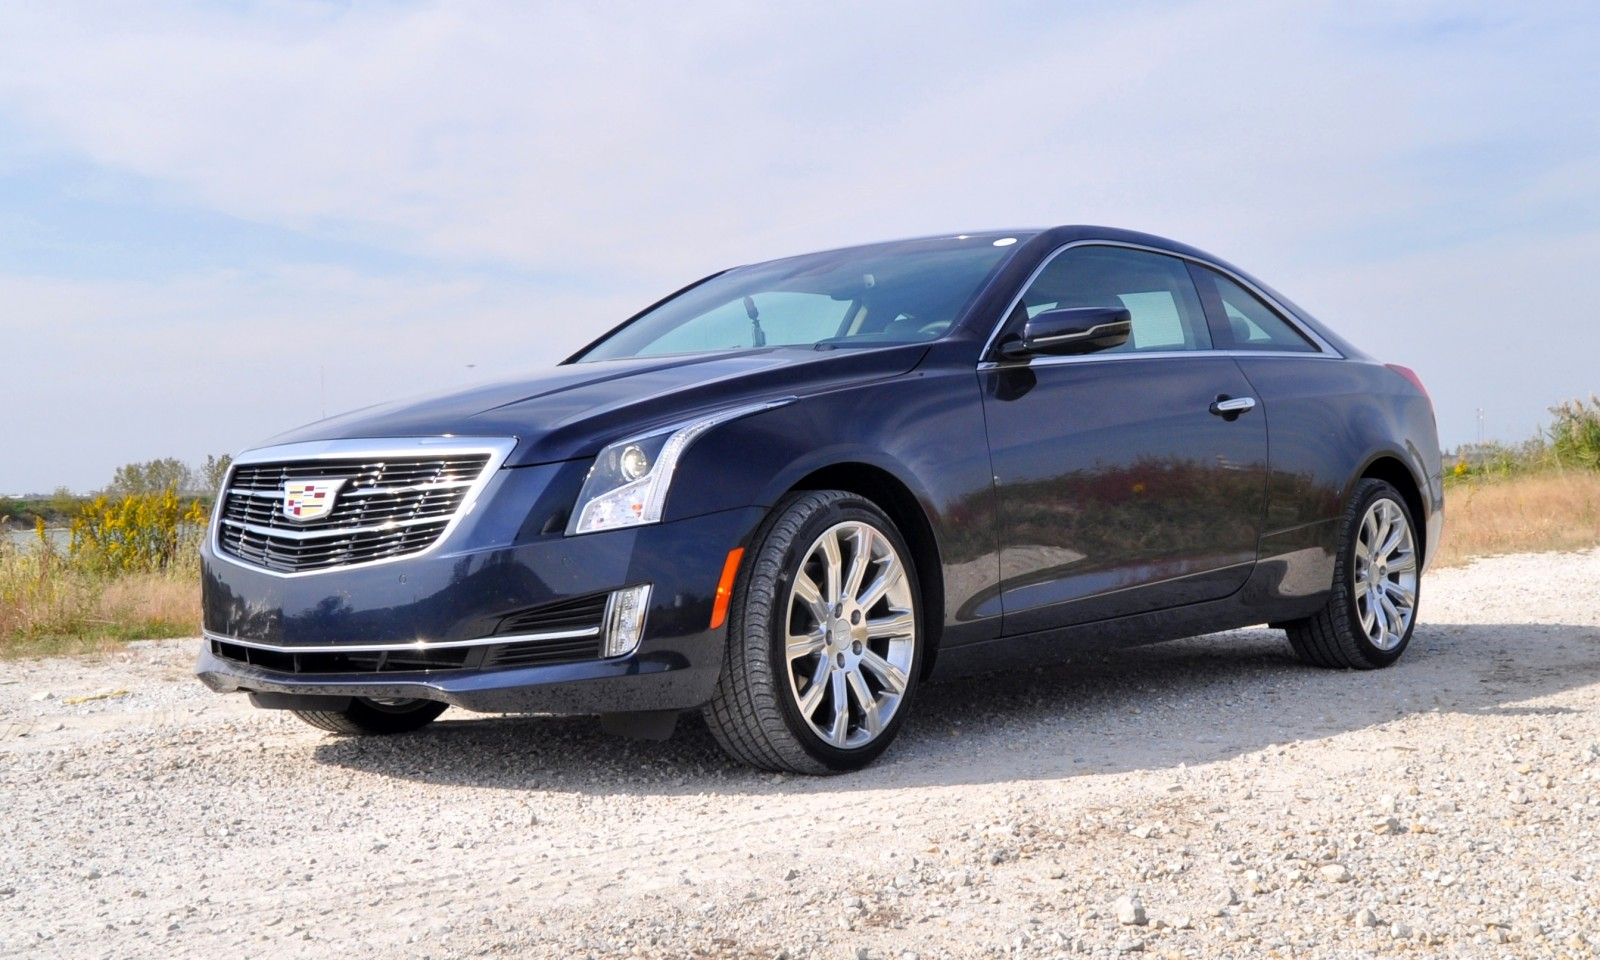 2015 cadillac ats coupe 3 6 awd 7. Black Bedroom Furniture Sets. Home Design Ideas